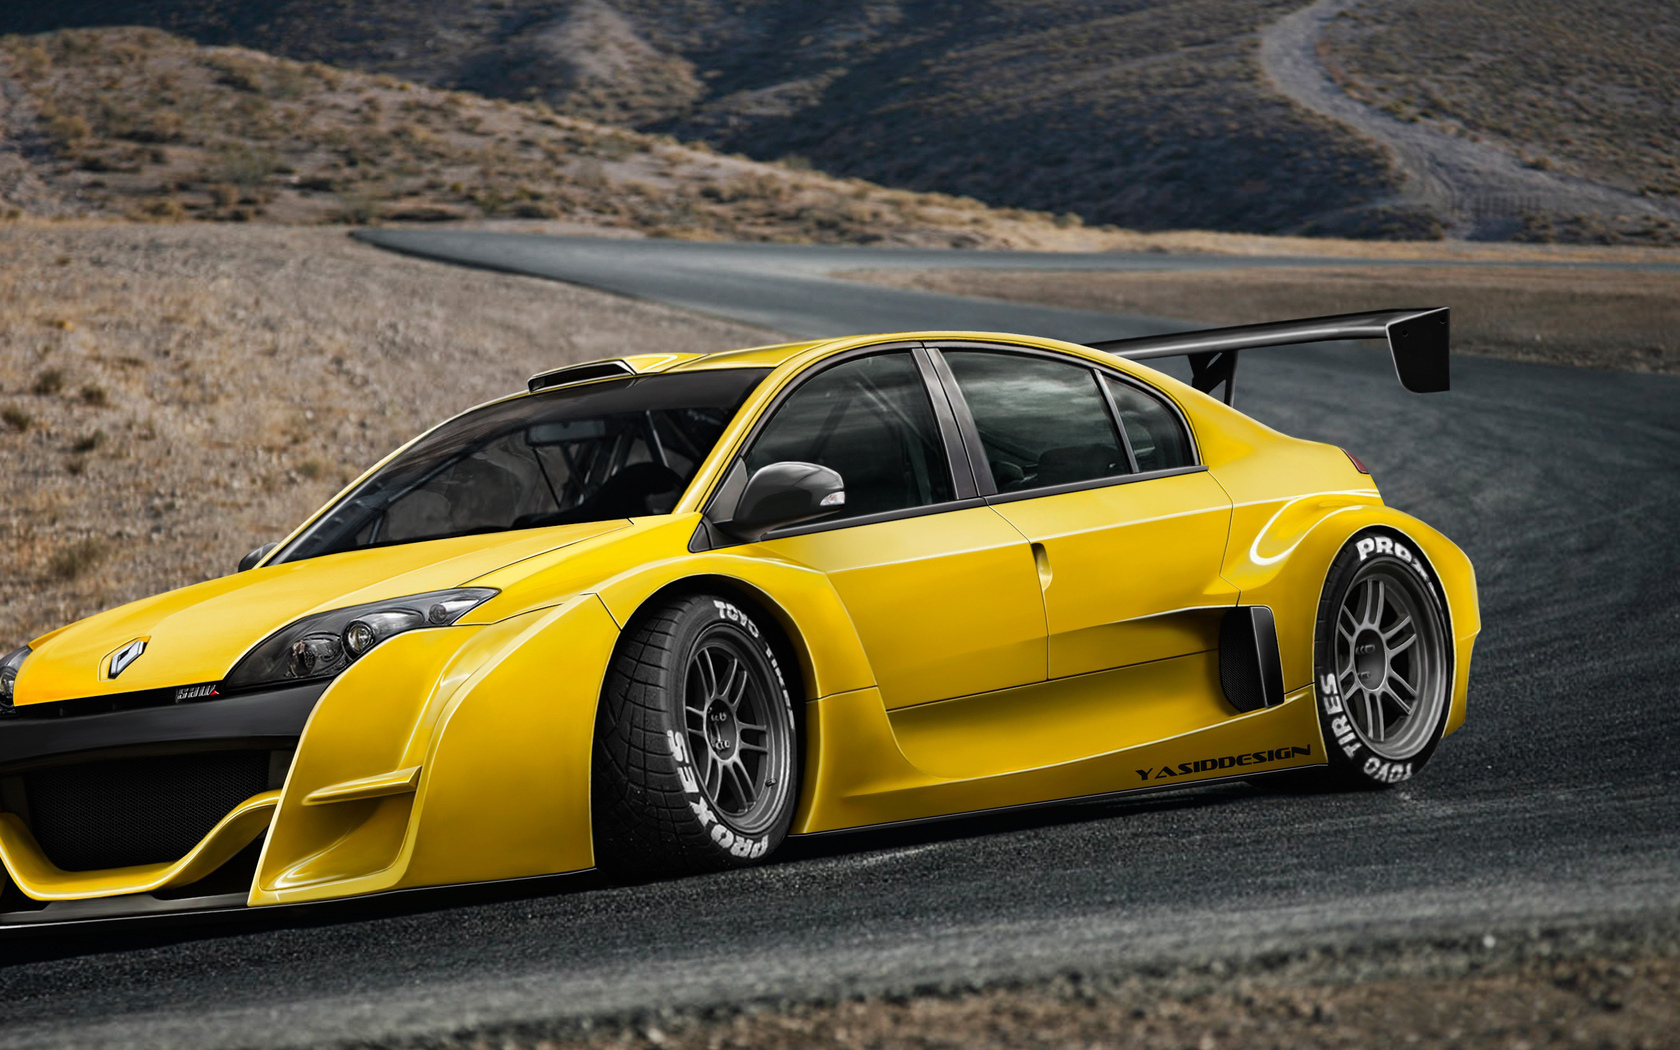 renault, saw trophy, laguna